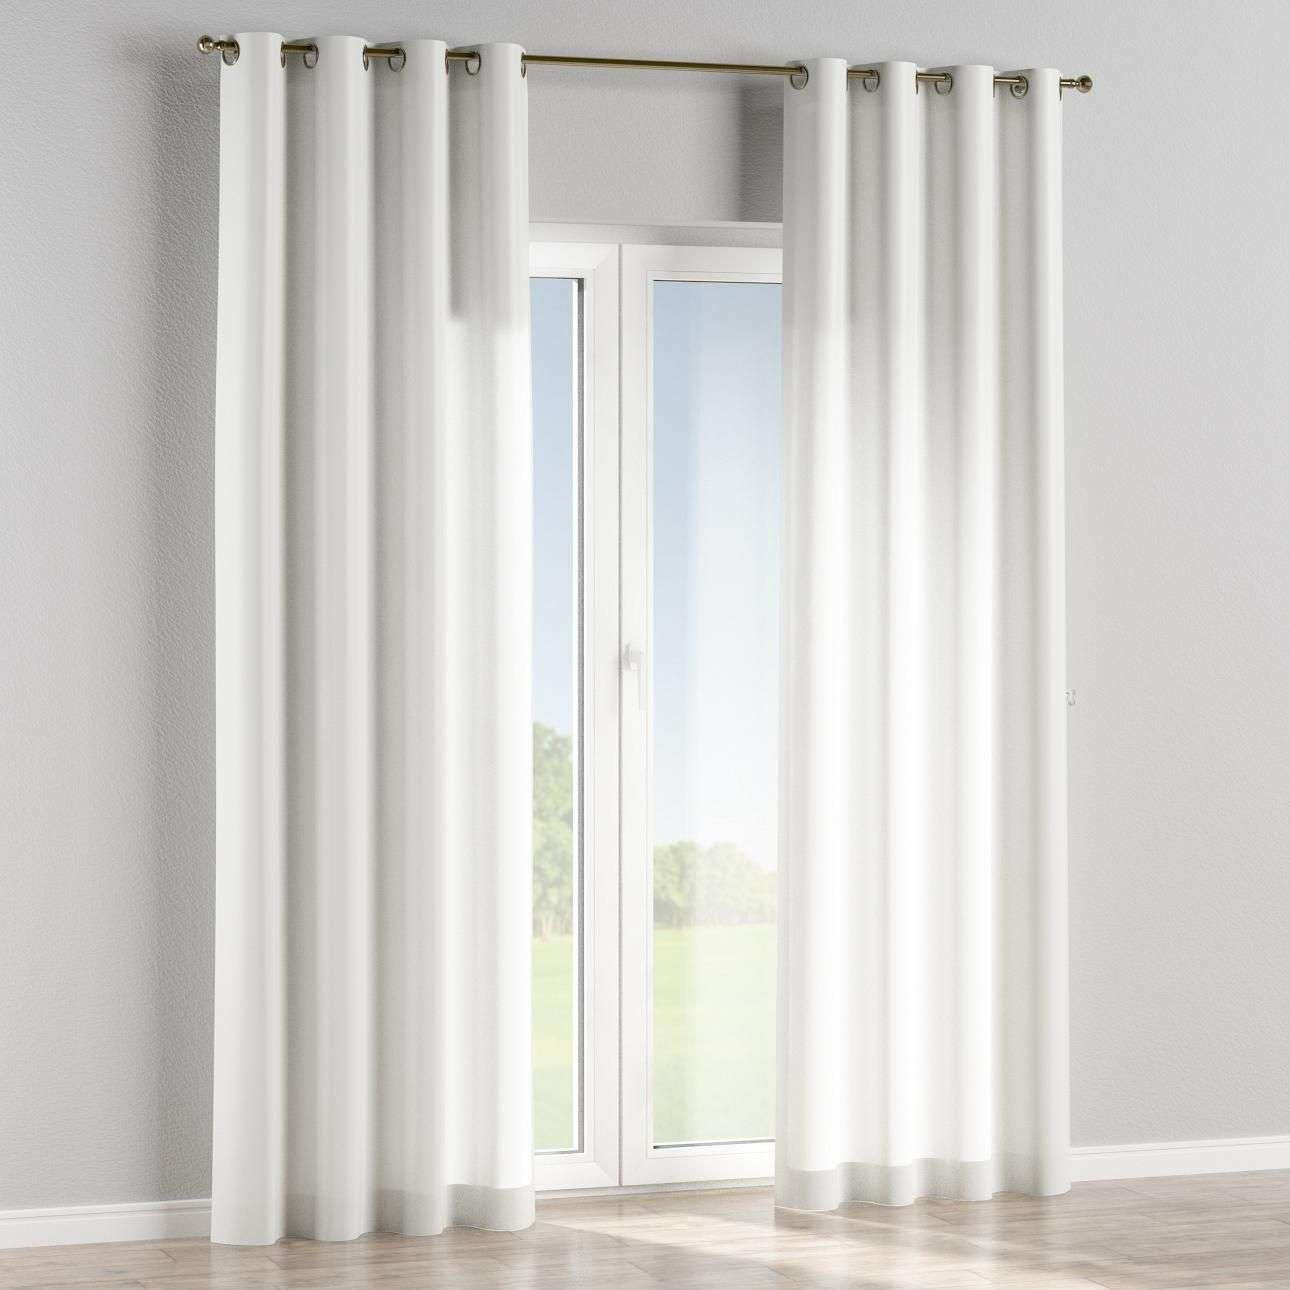 Eyelet lined curtains in collection Rustica, fabric: 138-23